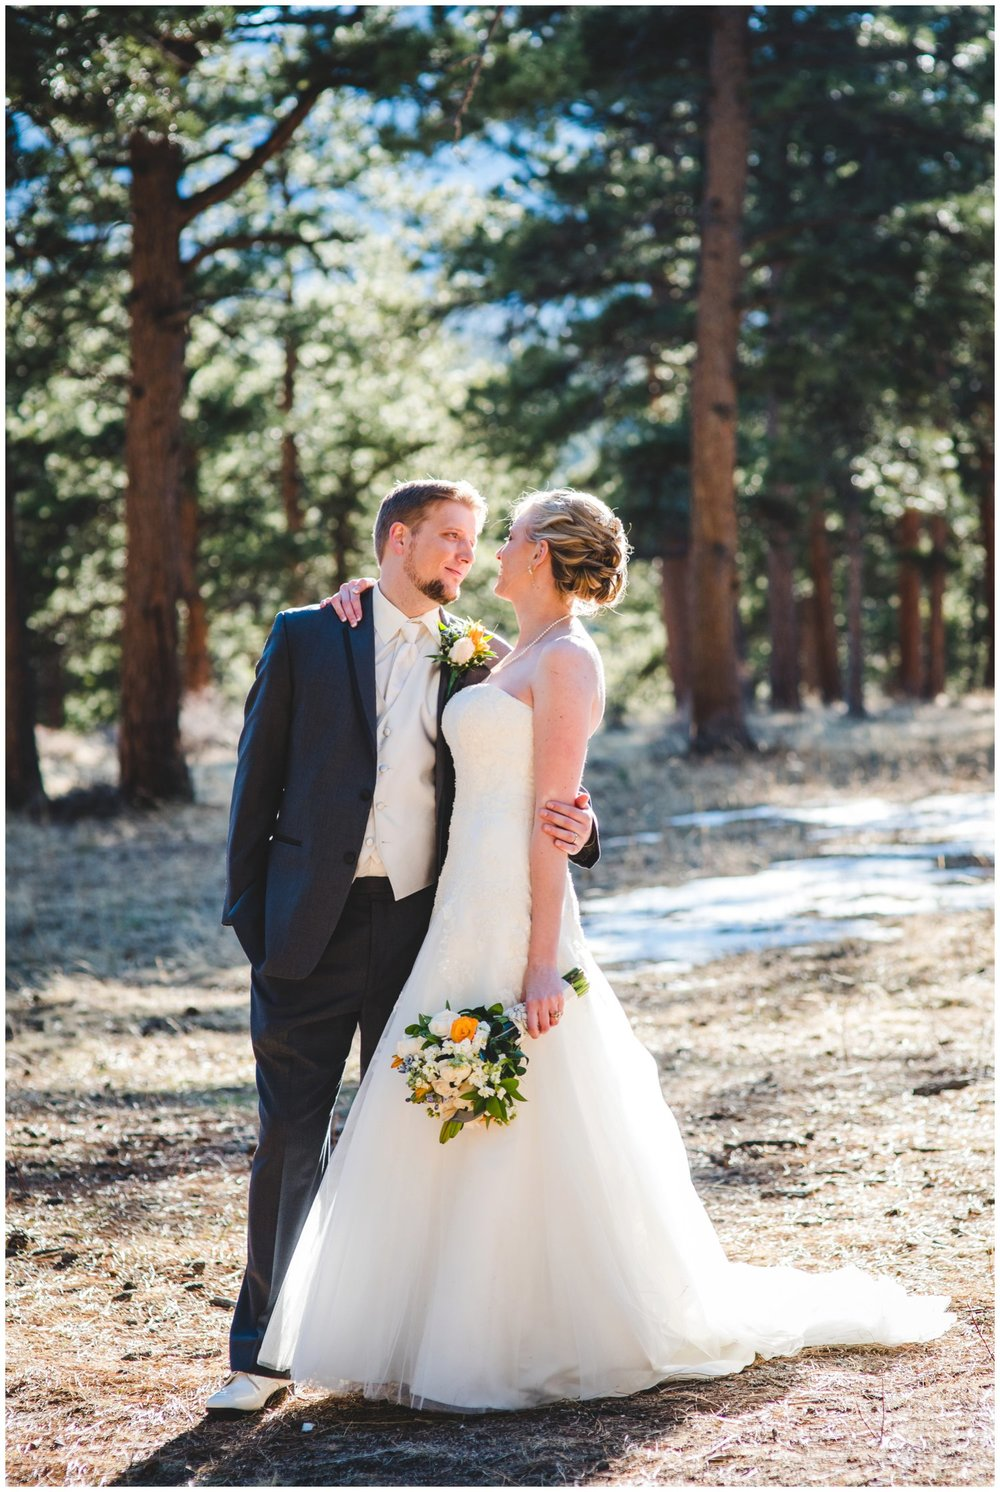 beautiful back lit bride and groom portrait in Colorado mountains